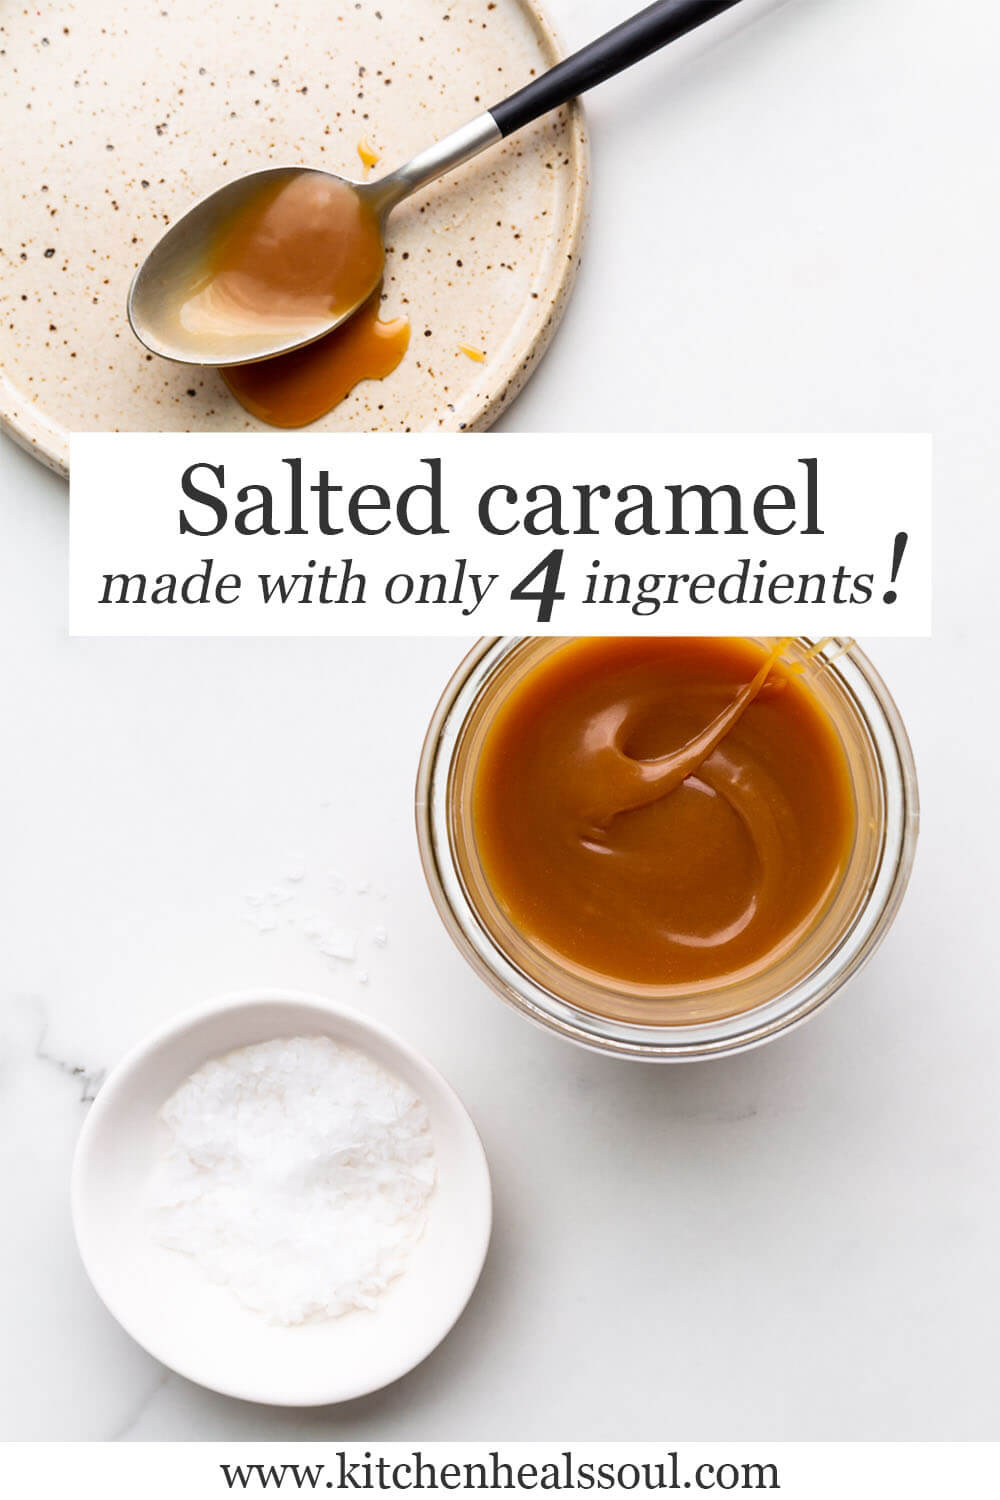 A jar of homemade salted caramel sauce made from only 4 ingredients, with a little bowl of flaky sea salt on the side and a ceramic plate with a spoonful of caramel